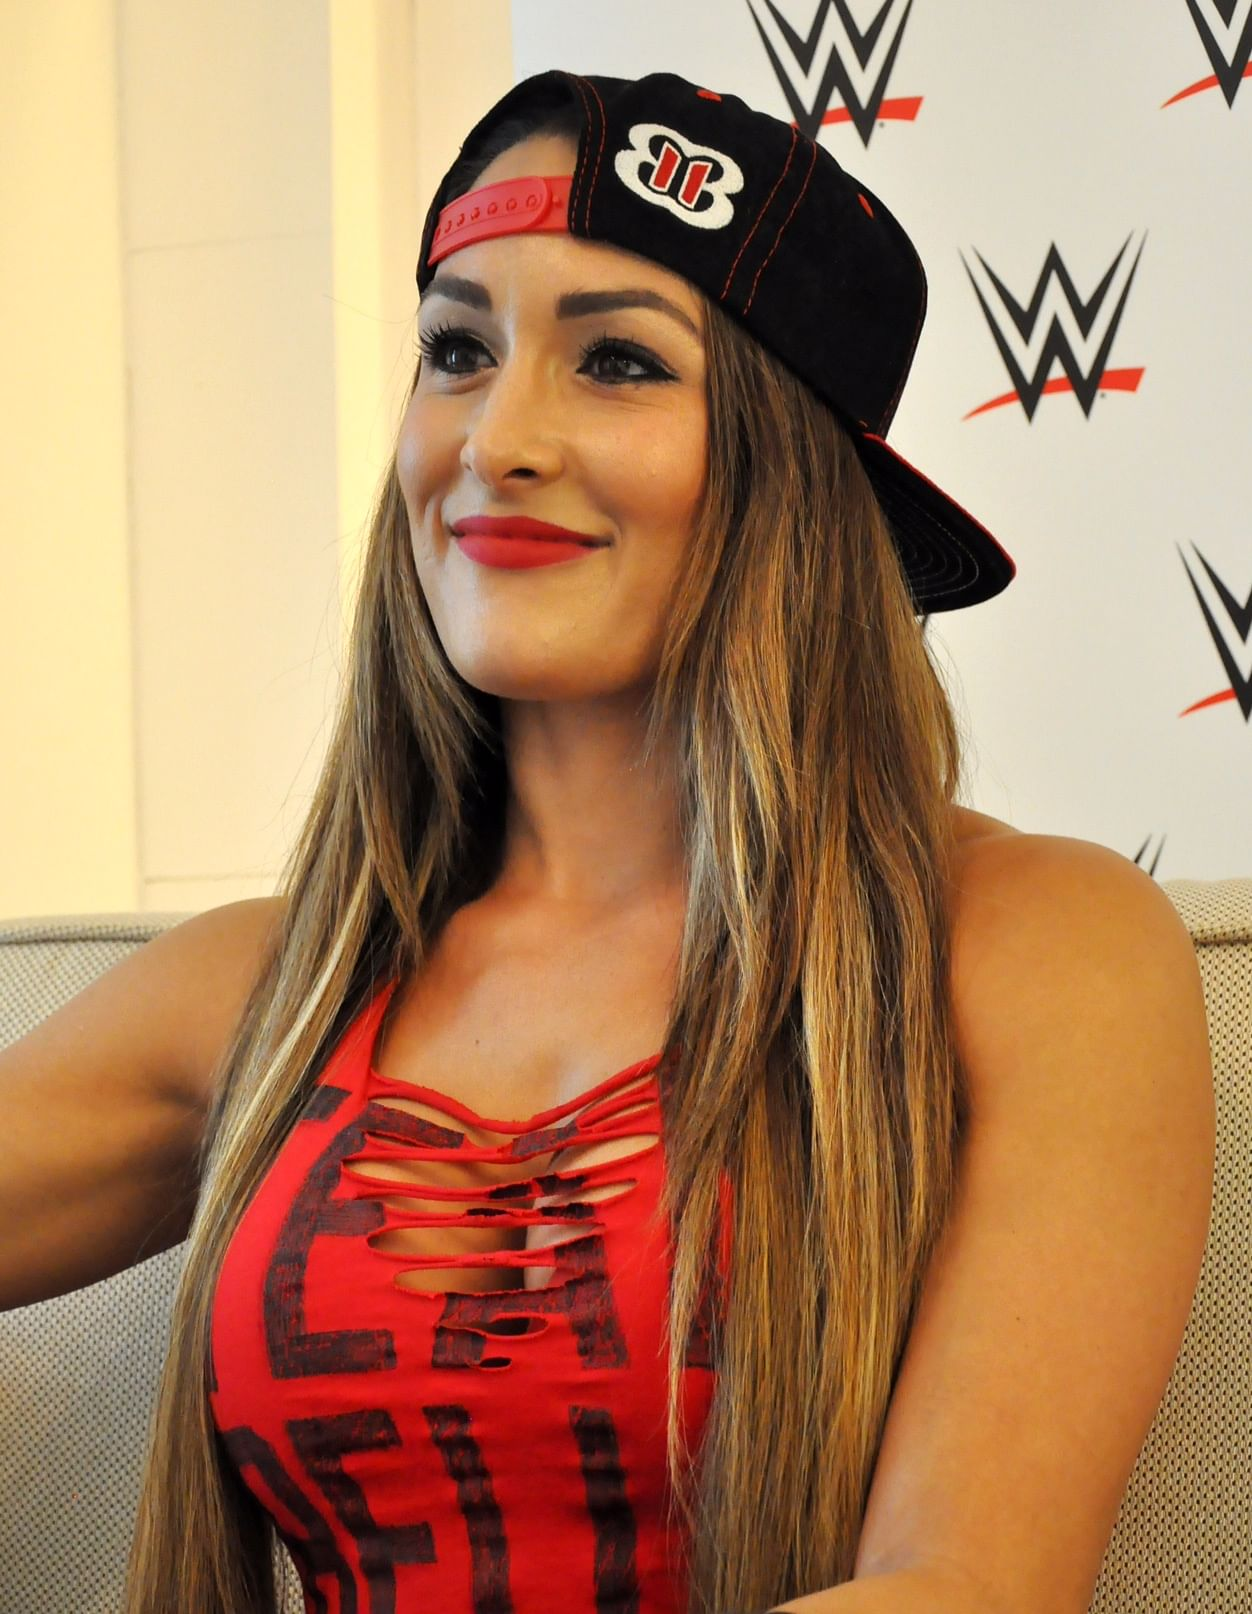 Nikki Bella earned a  million dollar salary, leaving the net worth at 1 million in 2017